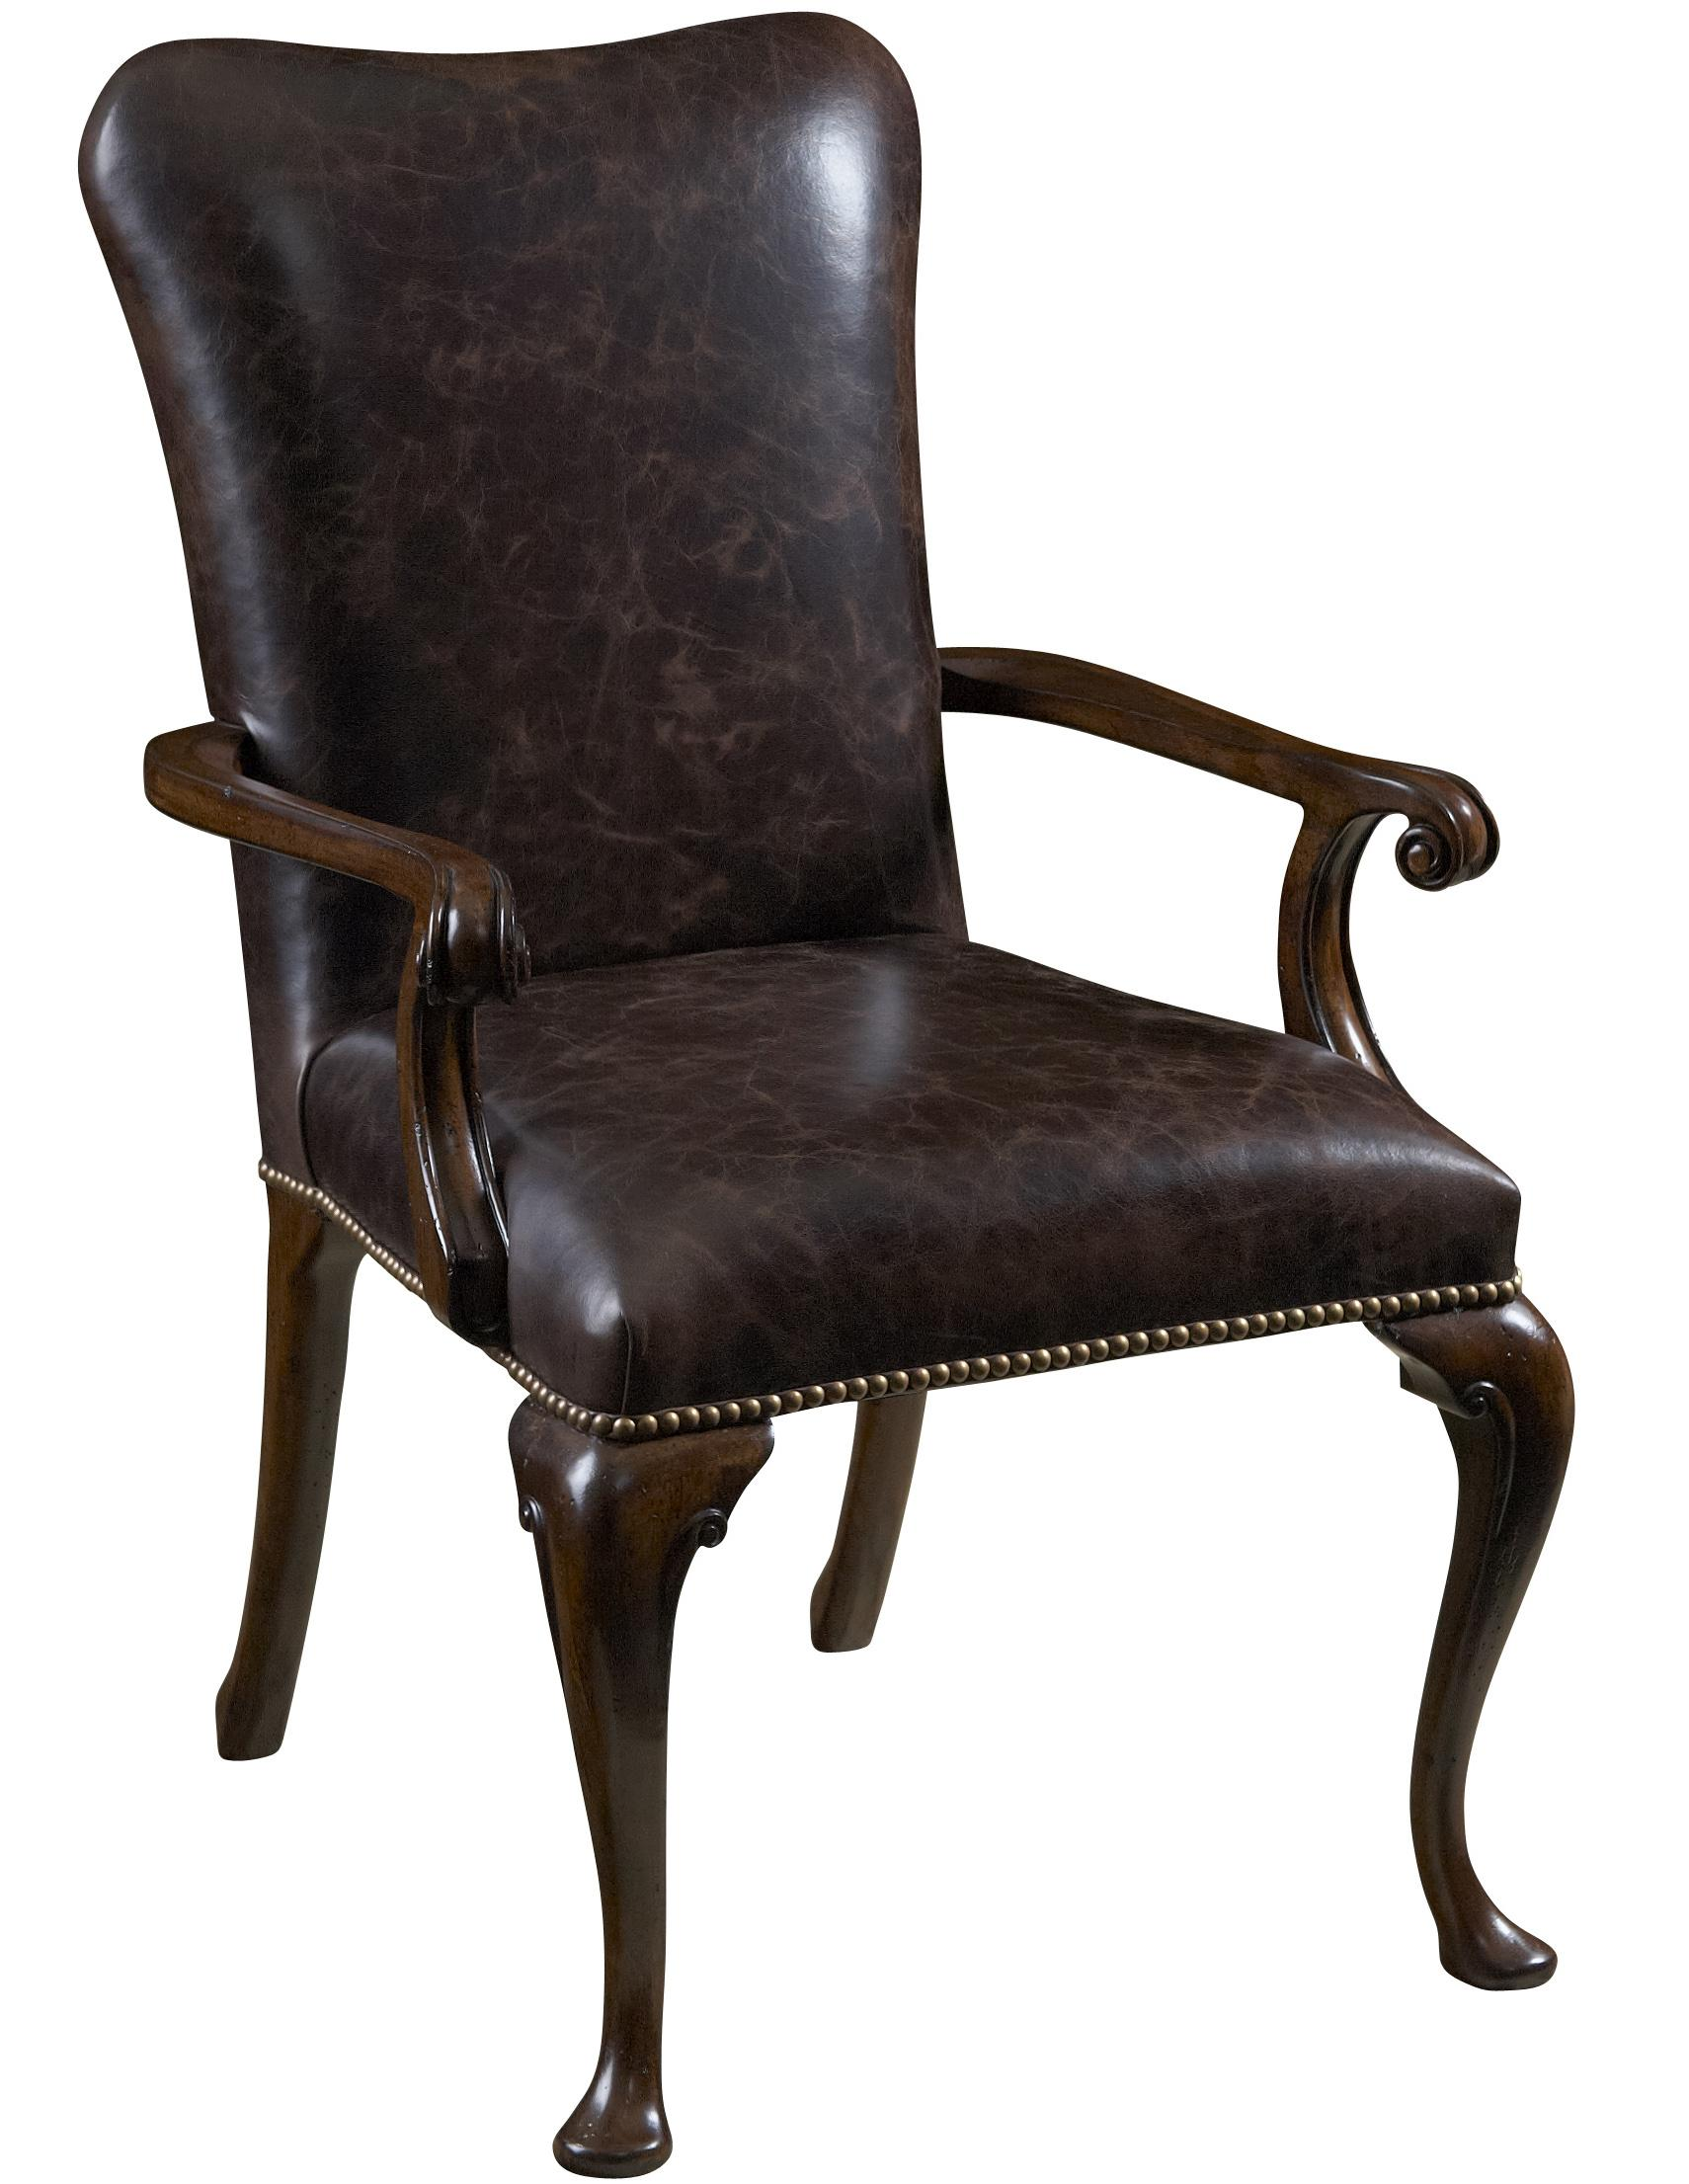 Leather Dining Room Chairs with Arms  Home Furniture Design